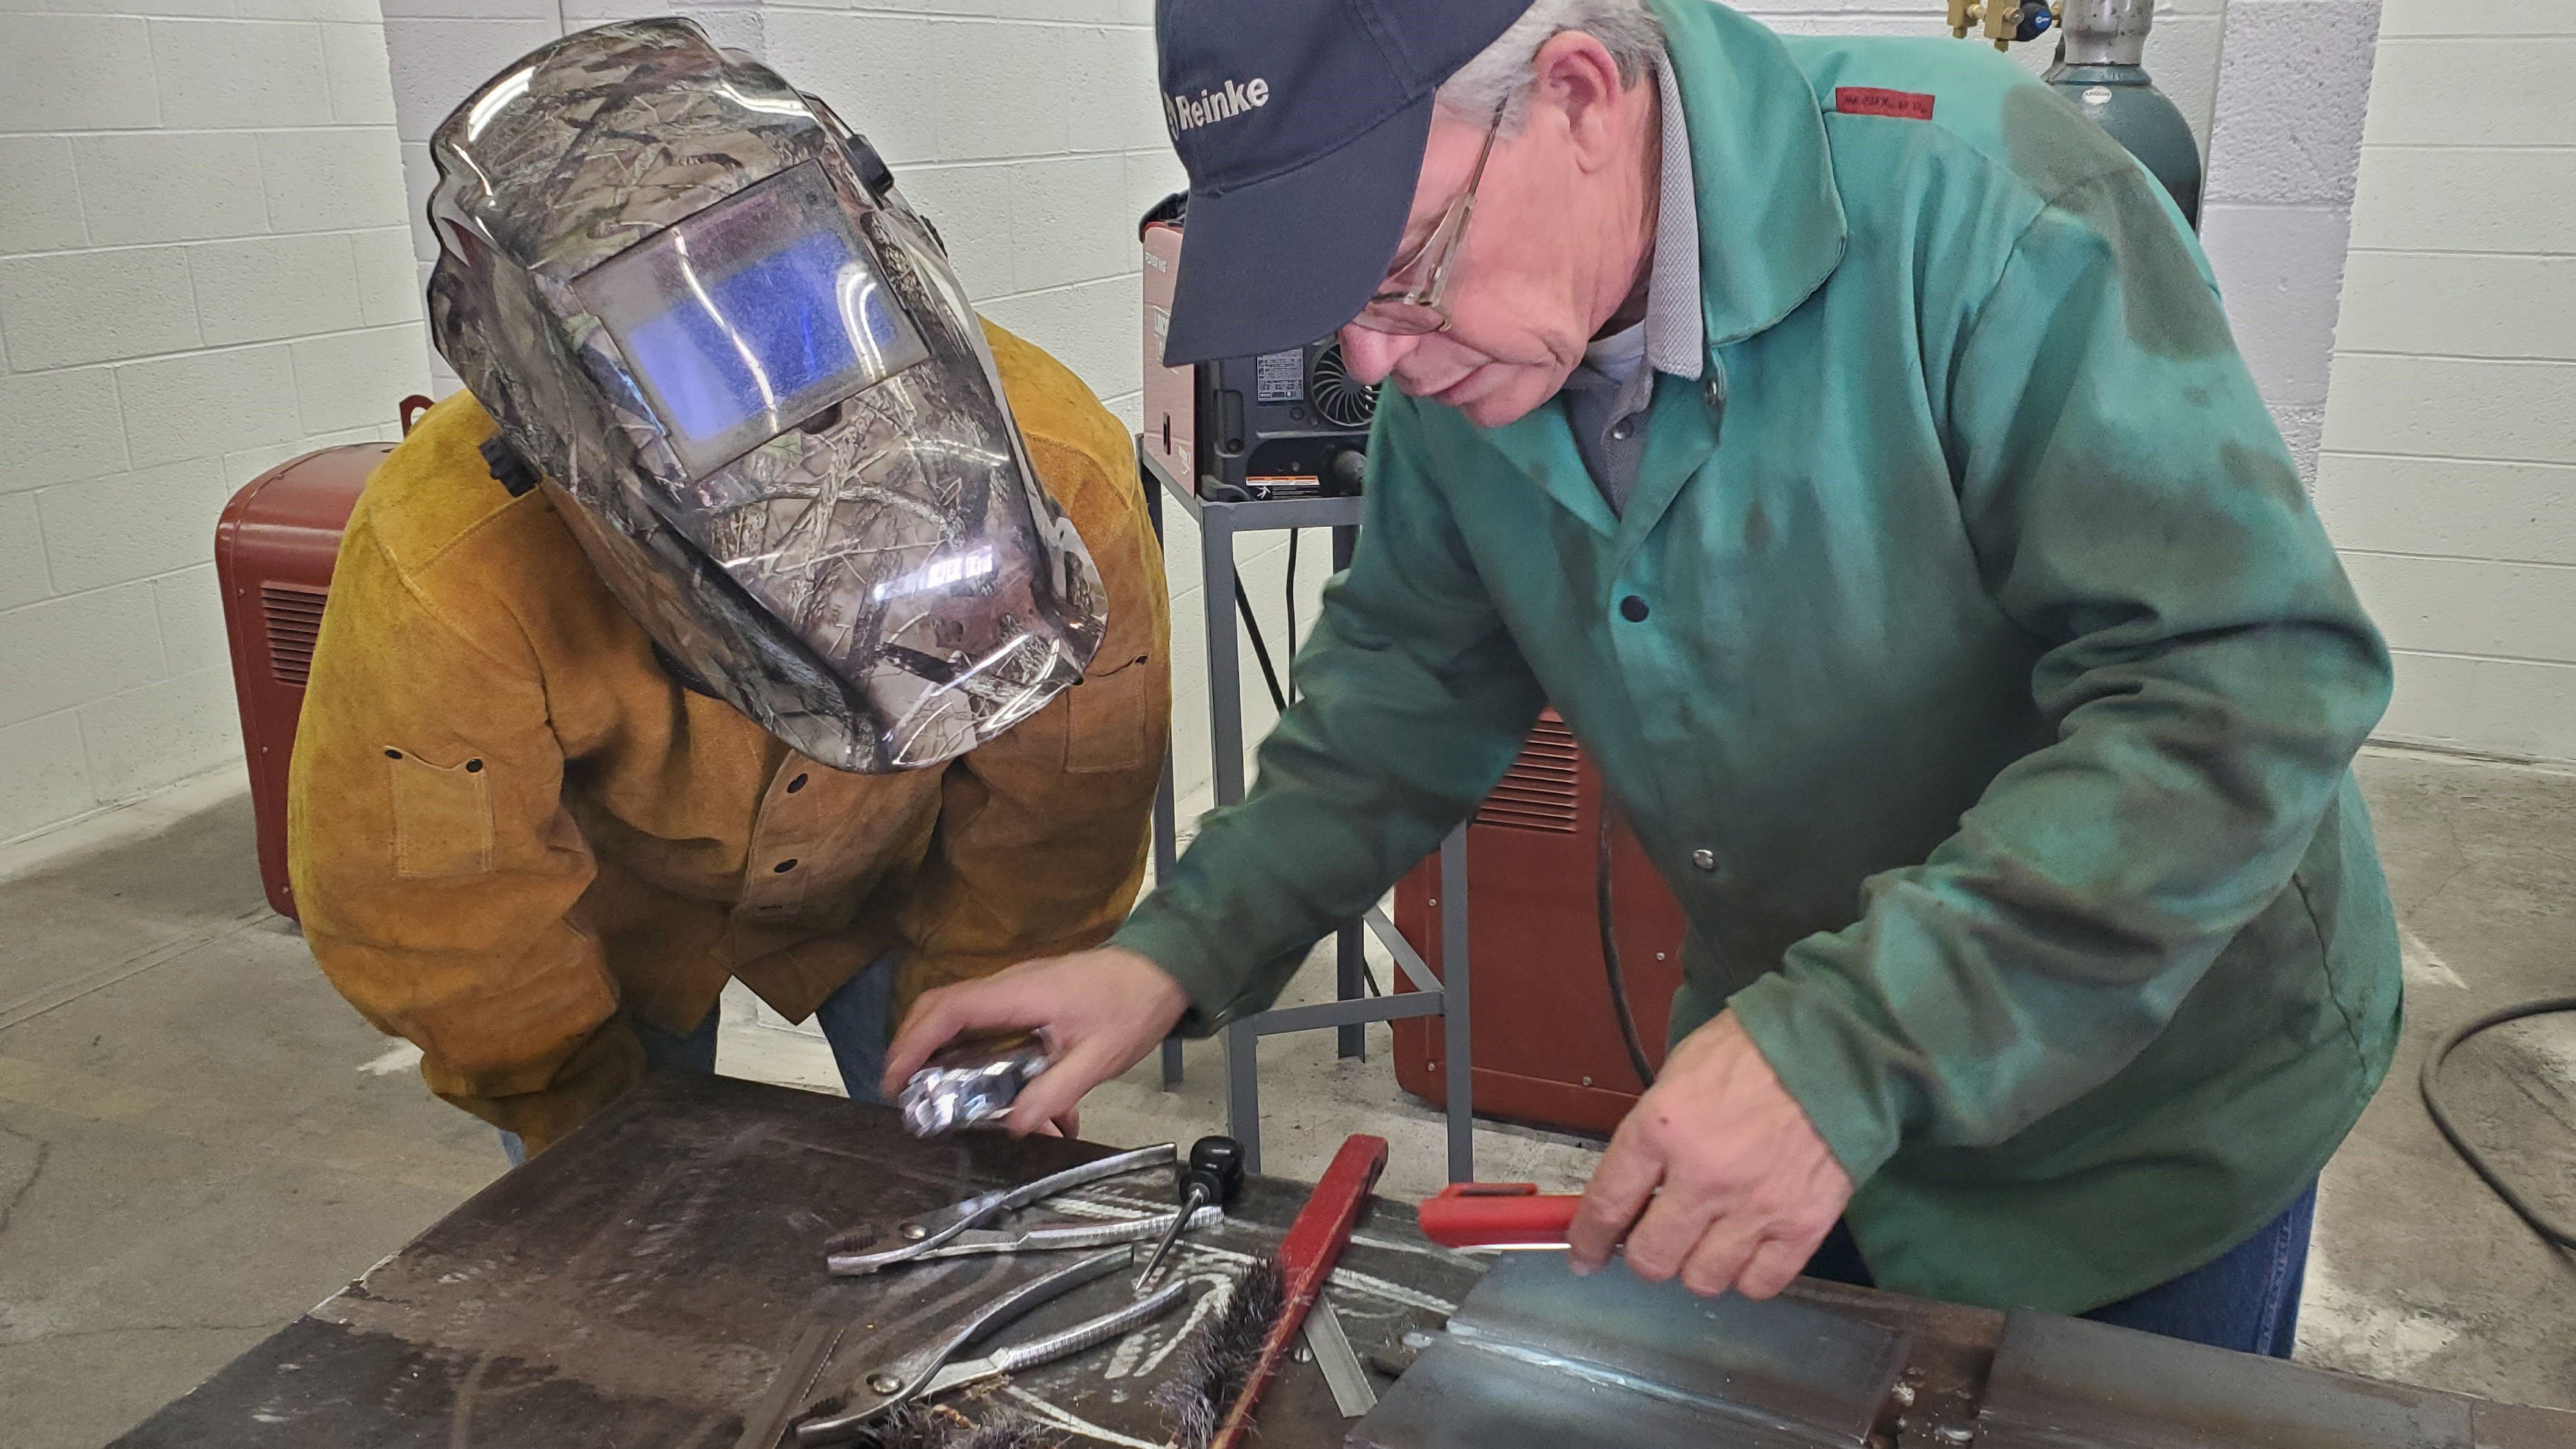 Chuck Hatzenbuehler of Reinke Manufacturing examines welds by Aggie Trever Muellenberg, North Platte, during a test for American Welding Society certification. (M. Crawford / NCTA photo)